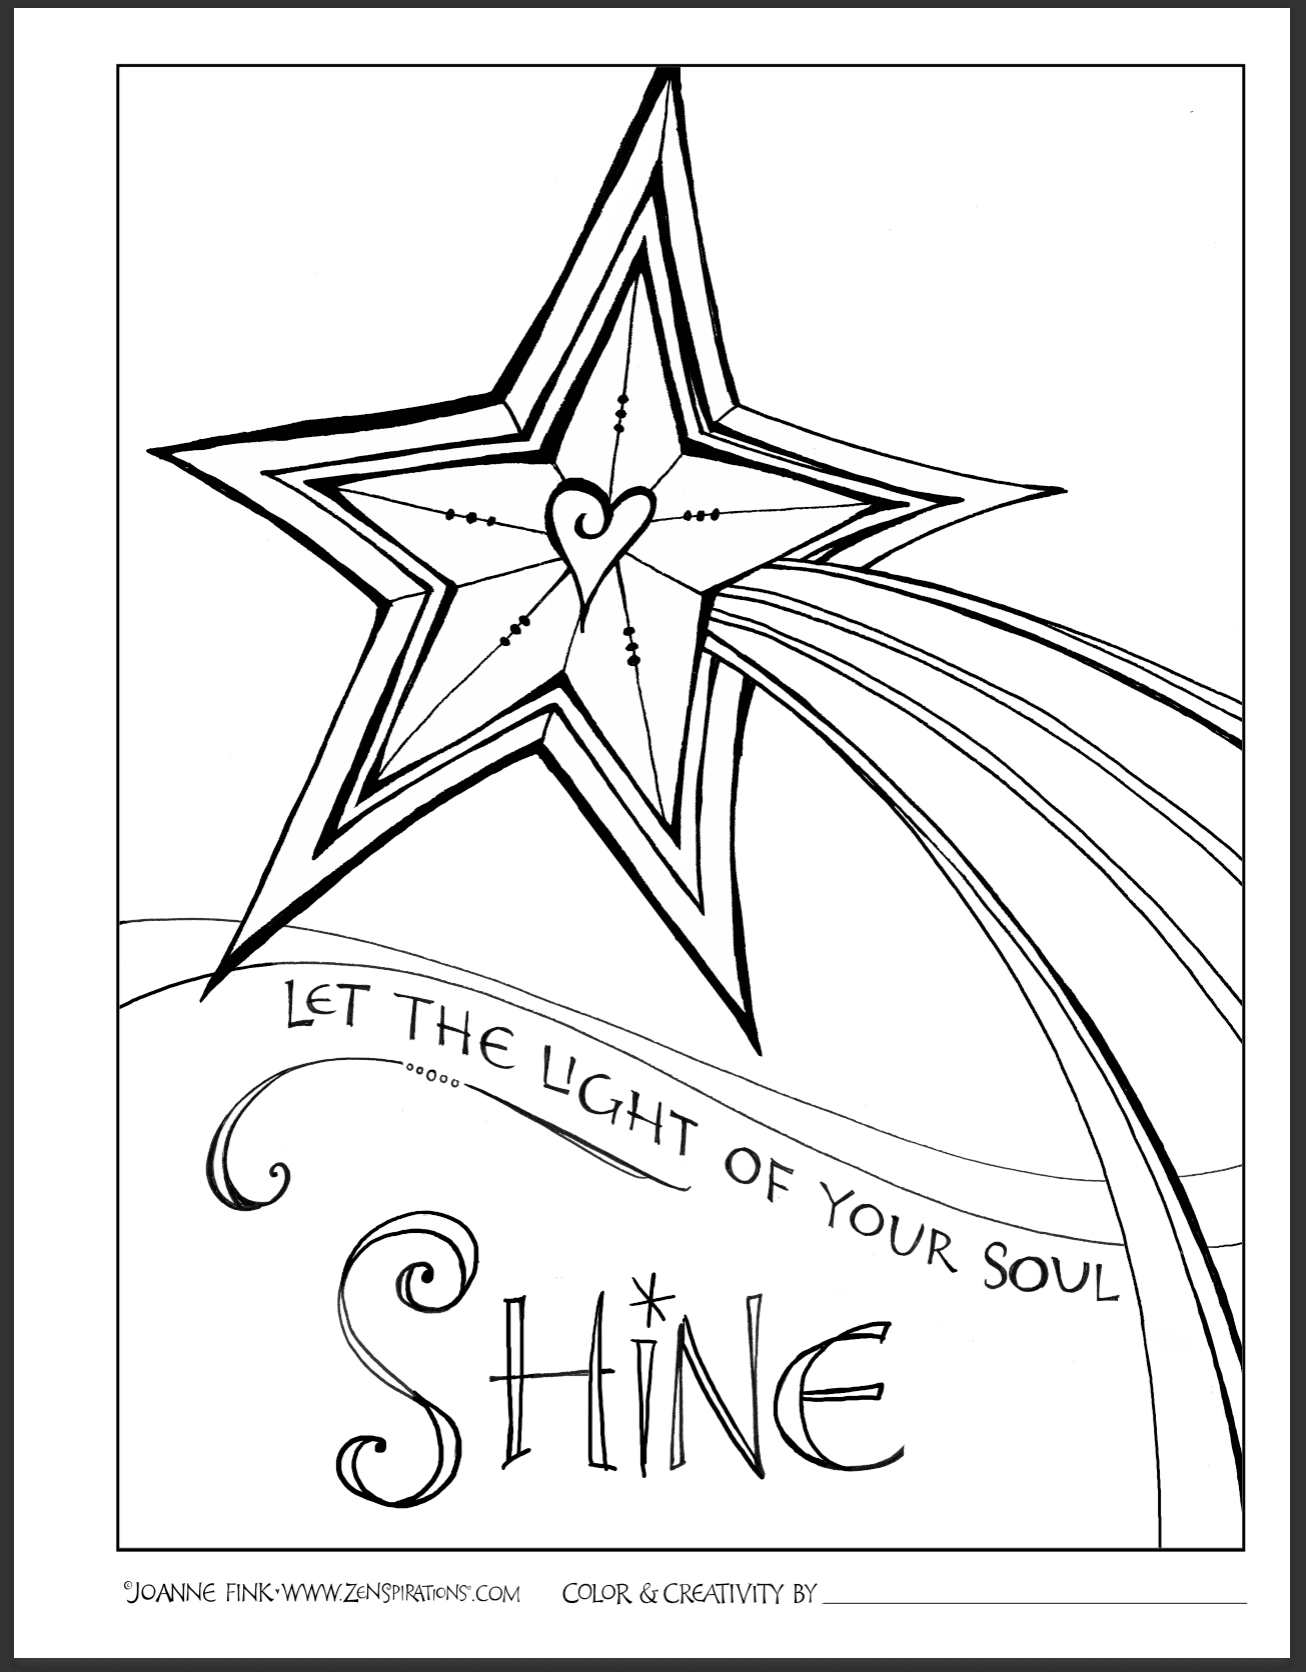 Zenspirations®_by_Joanne_Fink_Blog_1_30_17_Shine_Coloring_Page